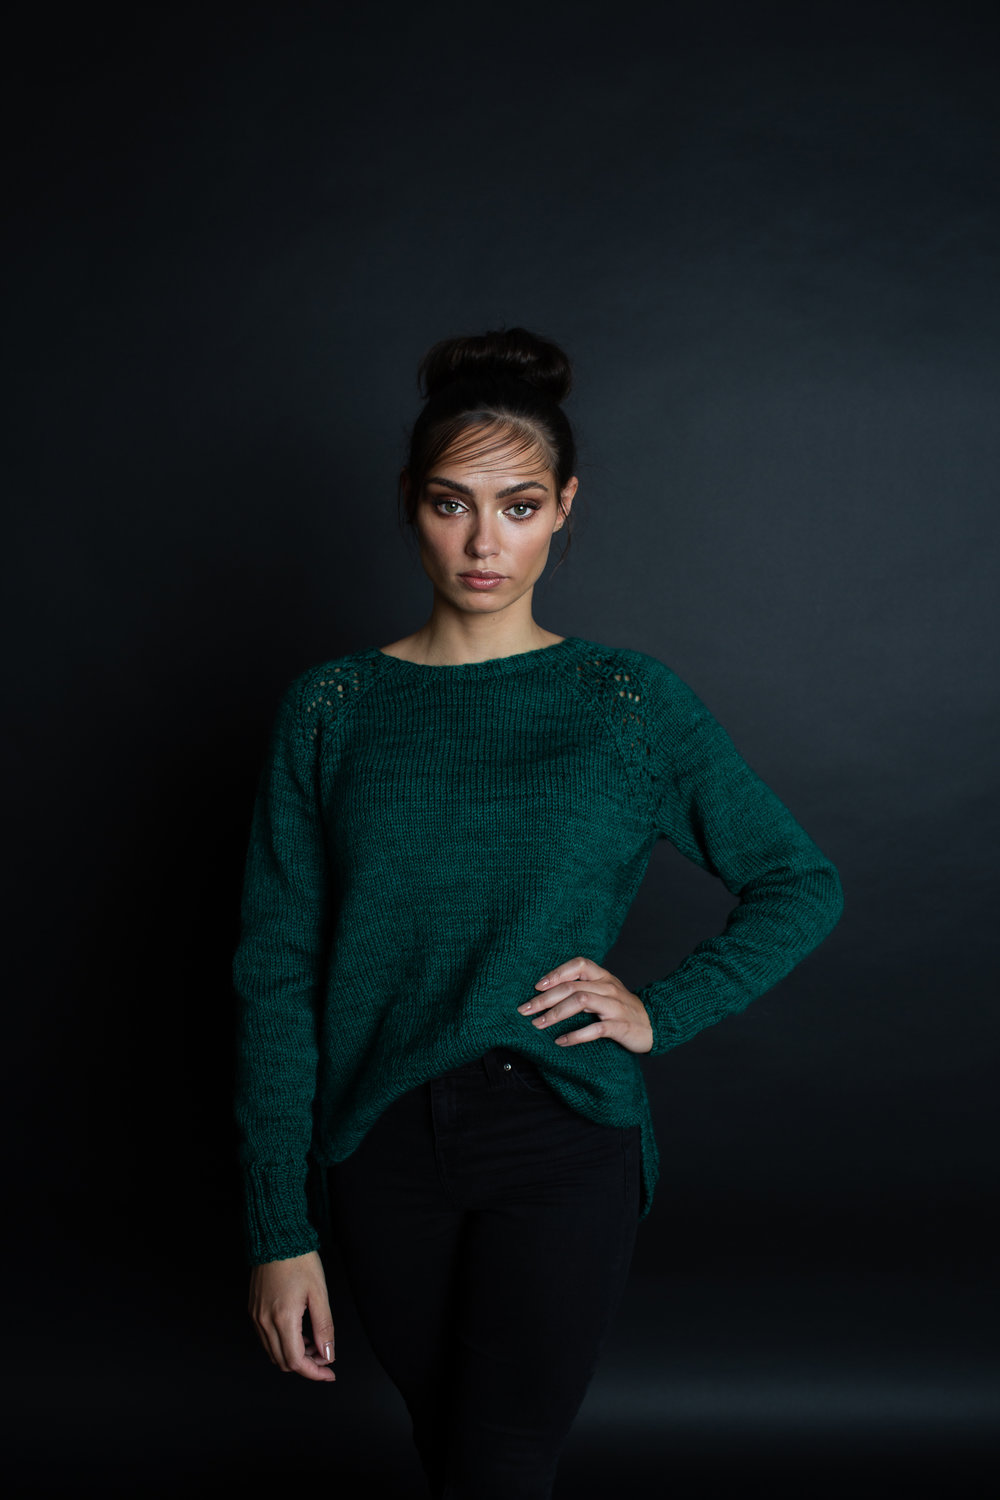 Diopside Pullover by Vanessa Ewing for JEWELS by Making Stories